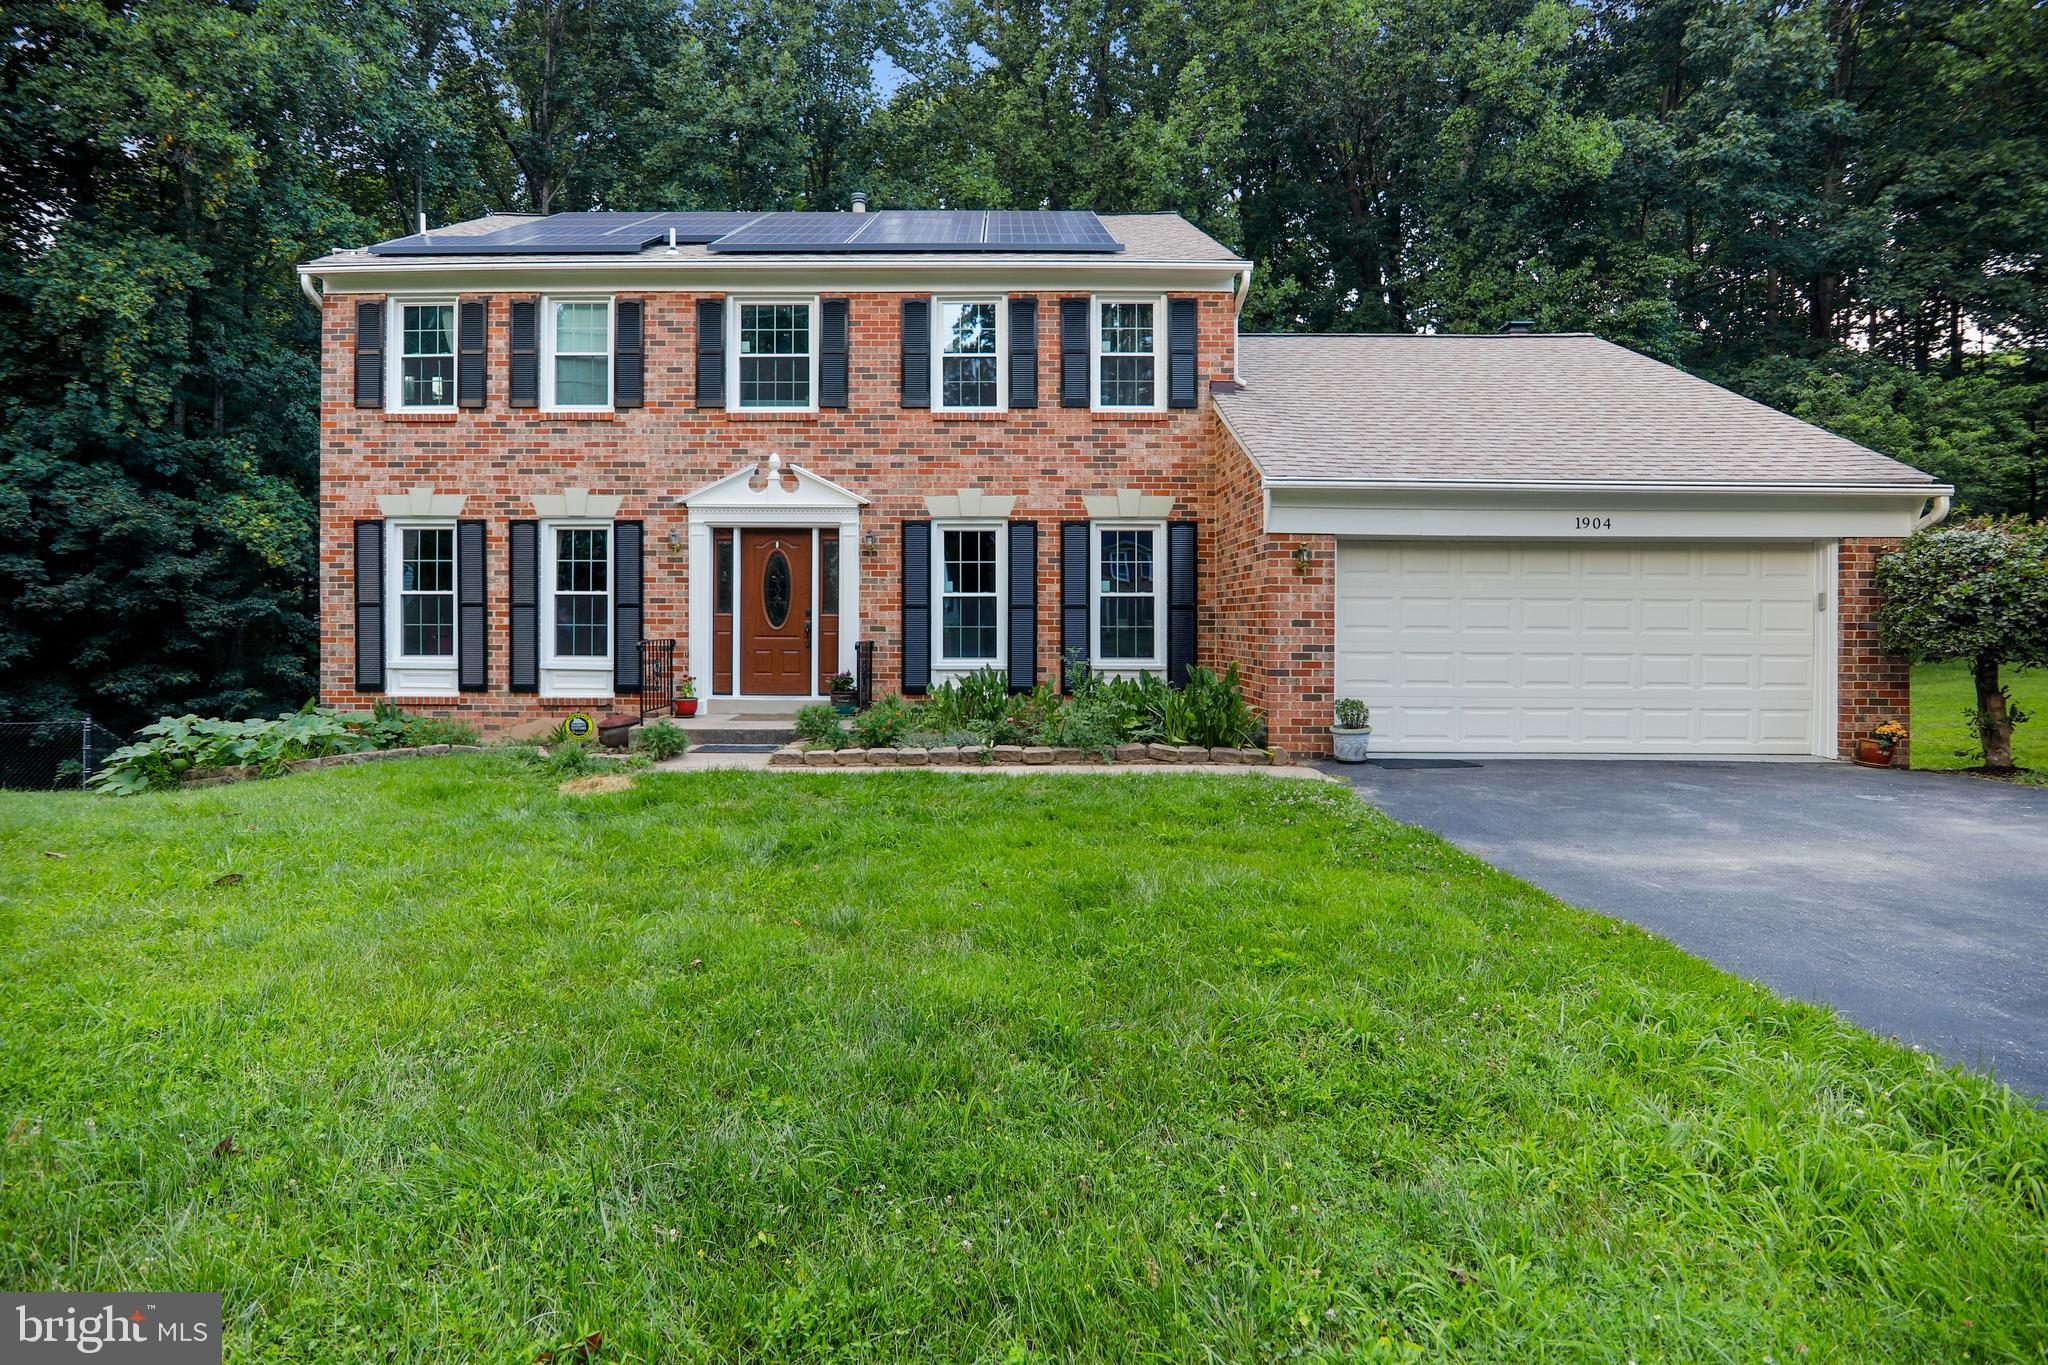 1904 AGATE DRIVE, SILVER SPRING, MD 20904